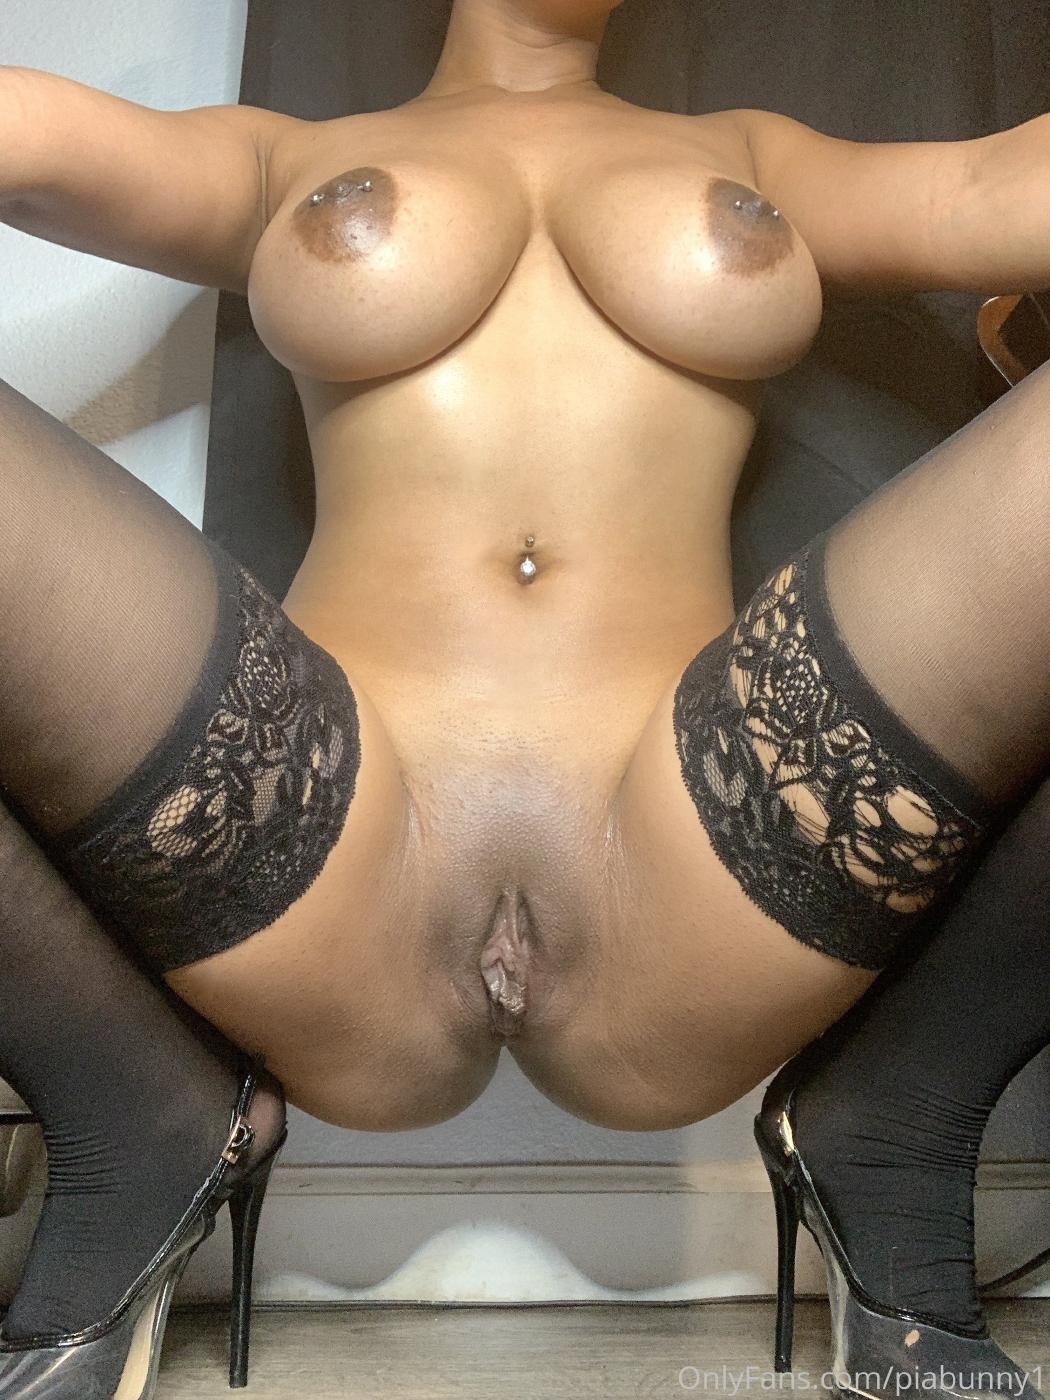 Pia Bunny Nude Onlyfans Leaked Smijsc